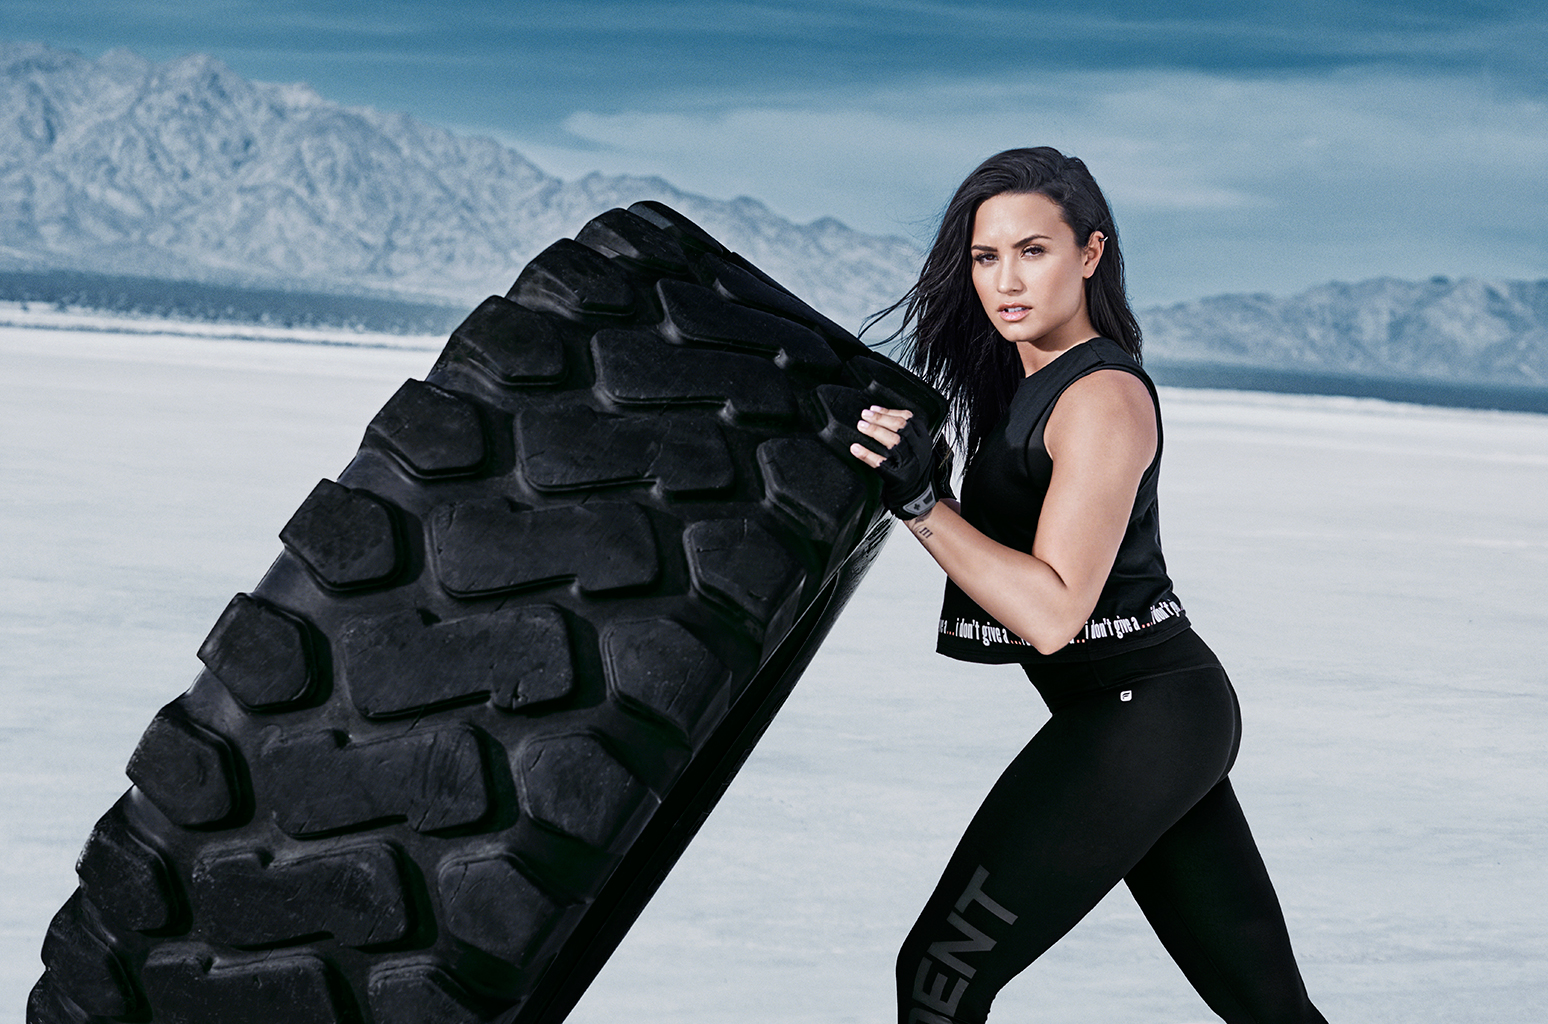 demi-lovato-fabletics-collaboration-2017-a-billboard-1548